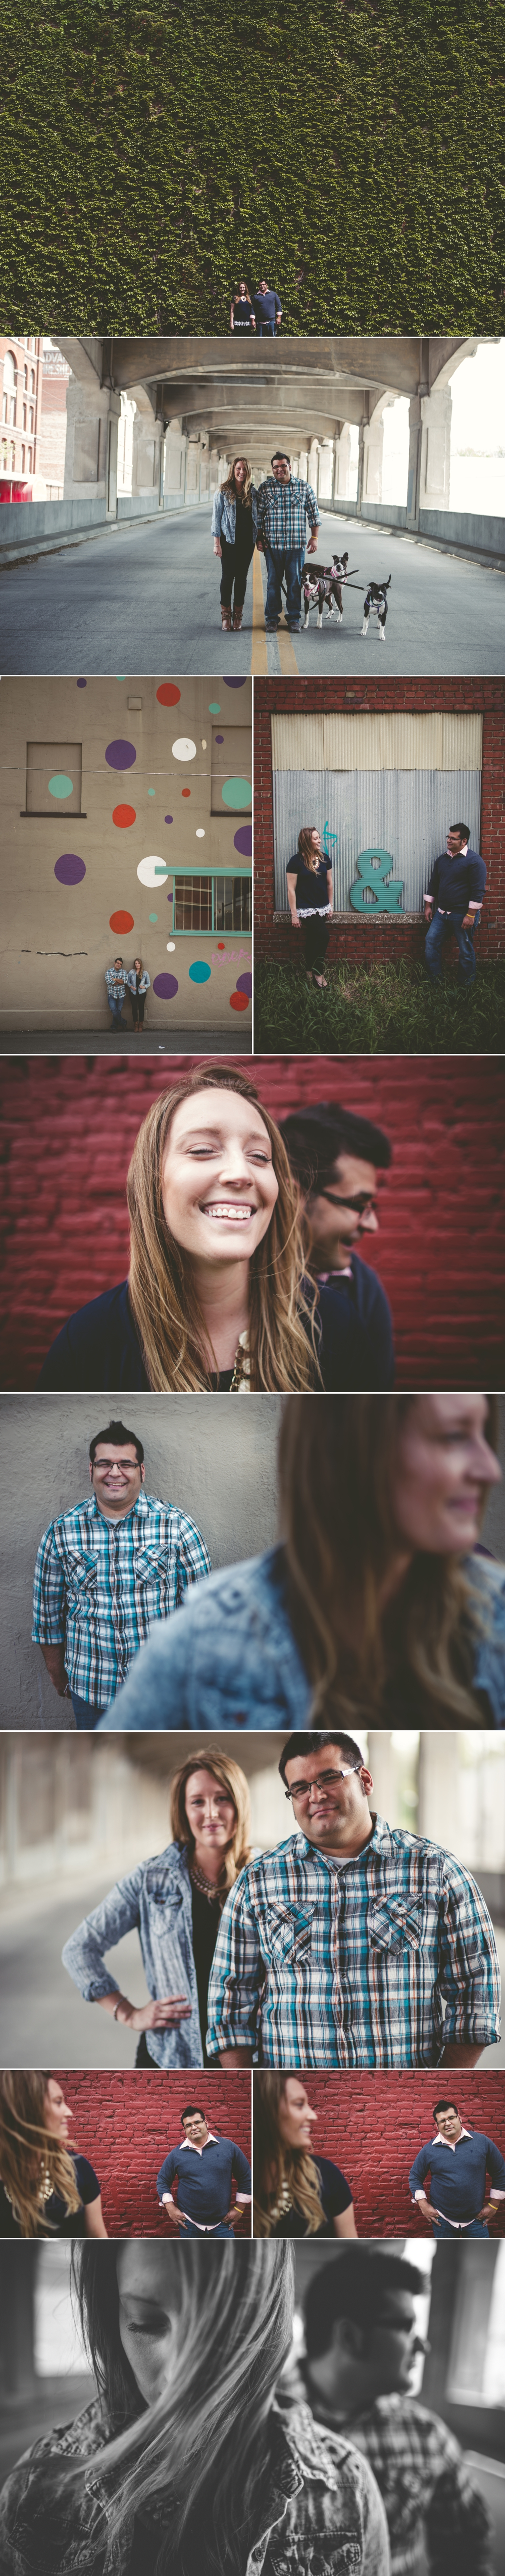 downtown_kansas_city_engagement_session_jason_domingues_photography_best_kc_wedding_photographer_west_bottoms_royals_dogs_crossroads, midtown_documentary_portrait_1